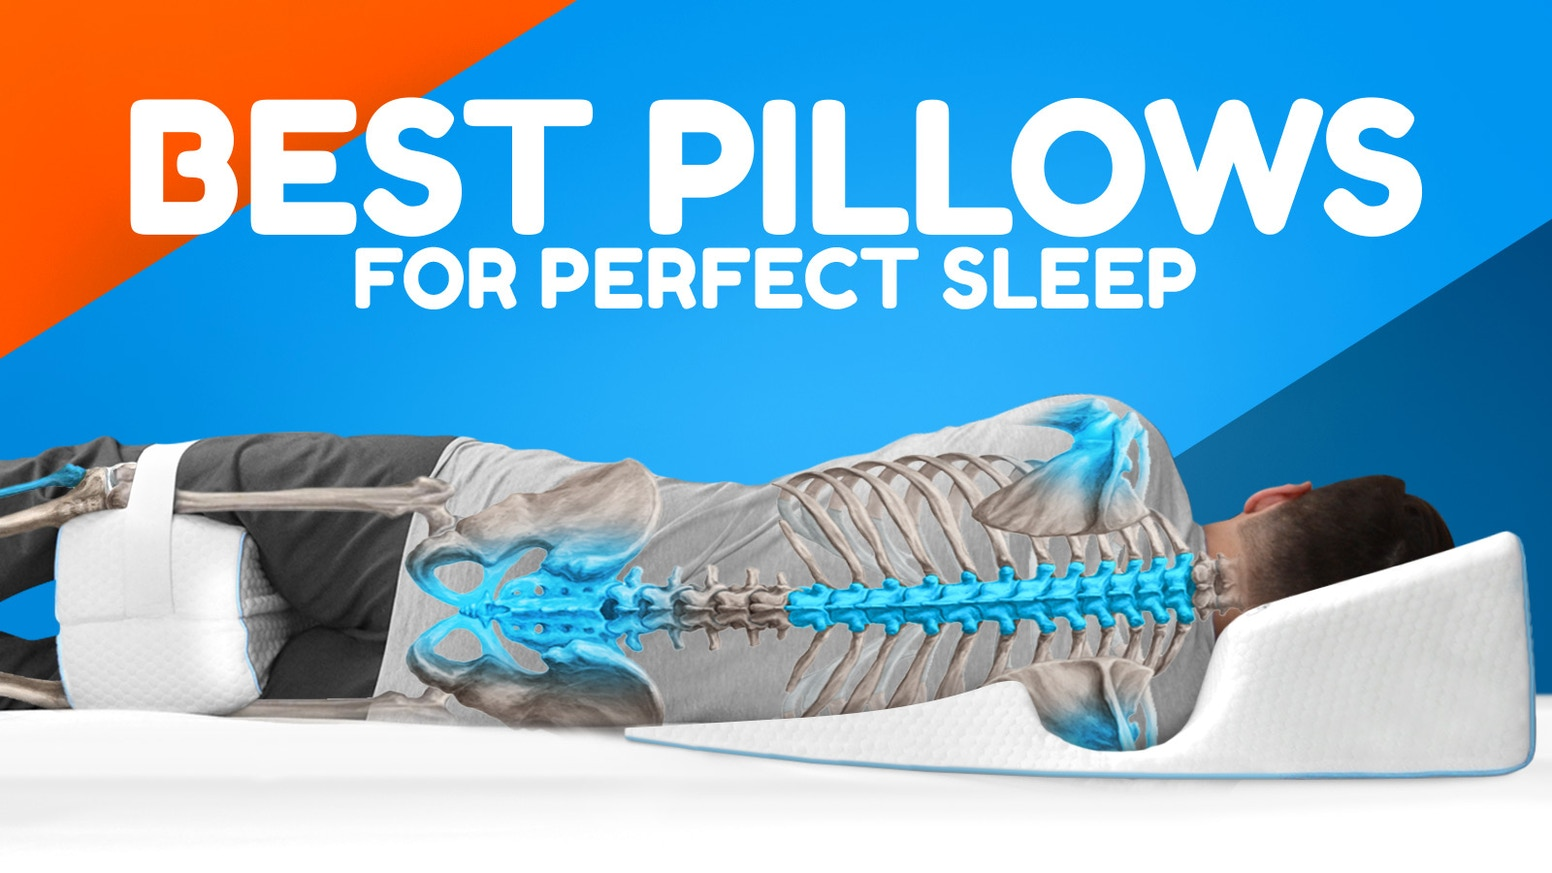 Orthopedic pillows will deliver the best posture that helps when suffering from heartburn, back/neck/joint pain, snoring and more